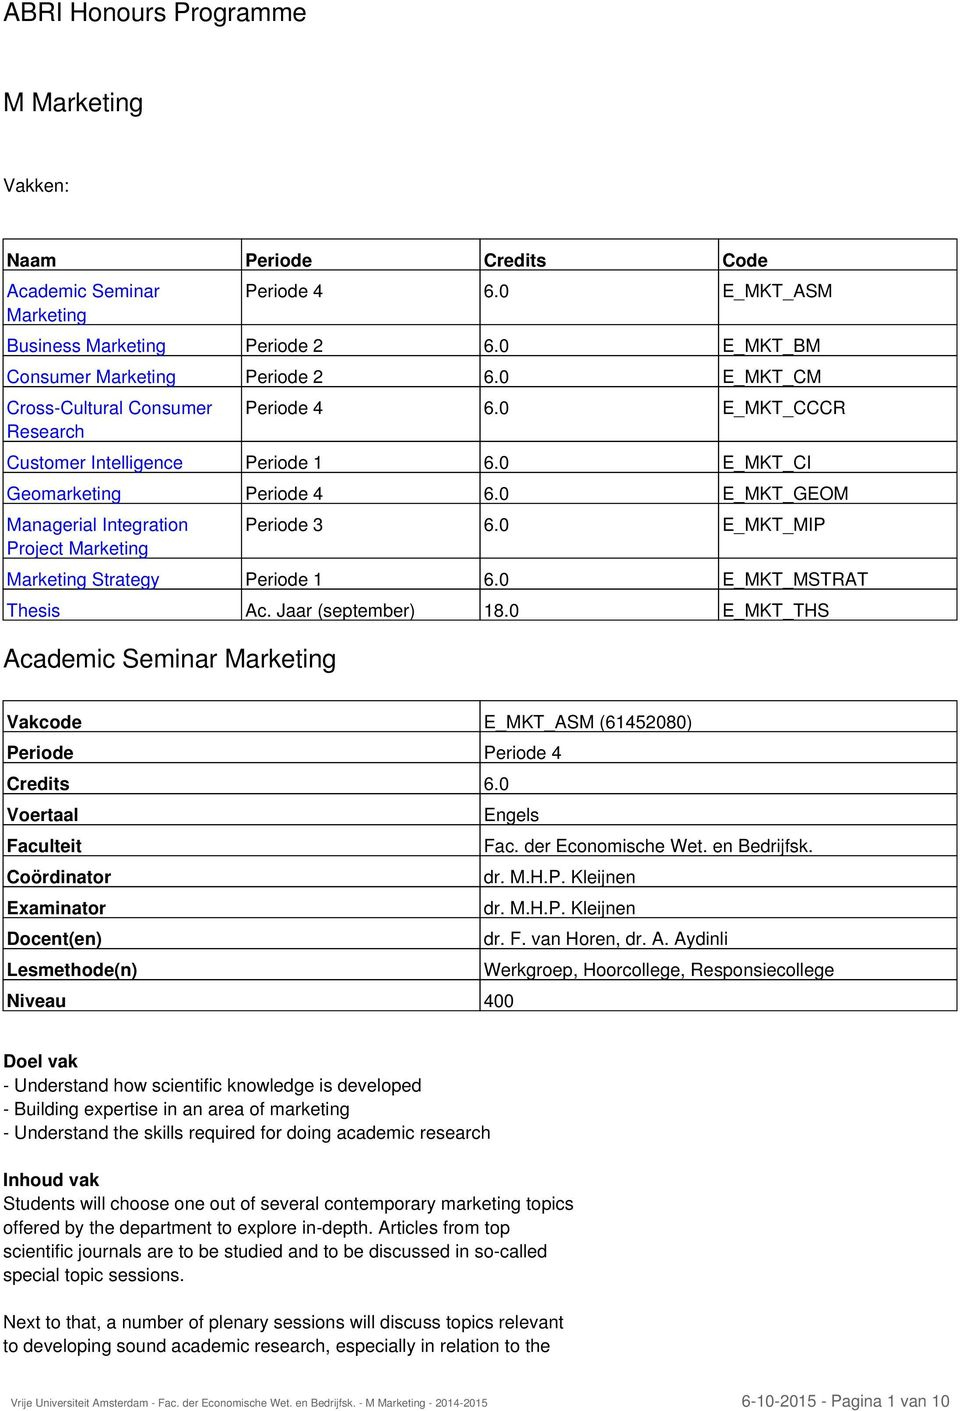 0 E_MKT_GEOM Managerial Integration Project Marketing Periode 3 6.0 E_MKT_MIP Marketing Strategy Periode 1 6.0 E_MKT_MSTRAT Thesis Ac. Jaar (september) 18.